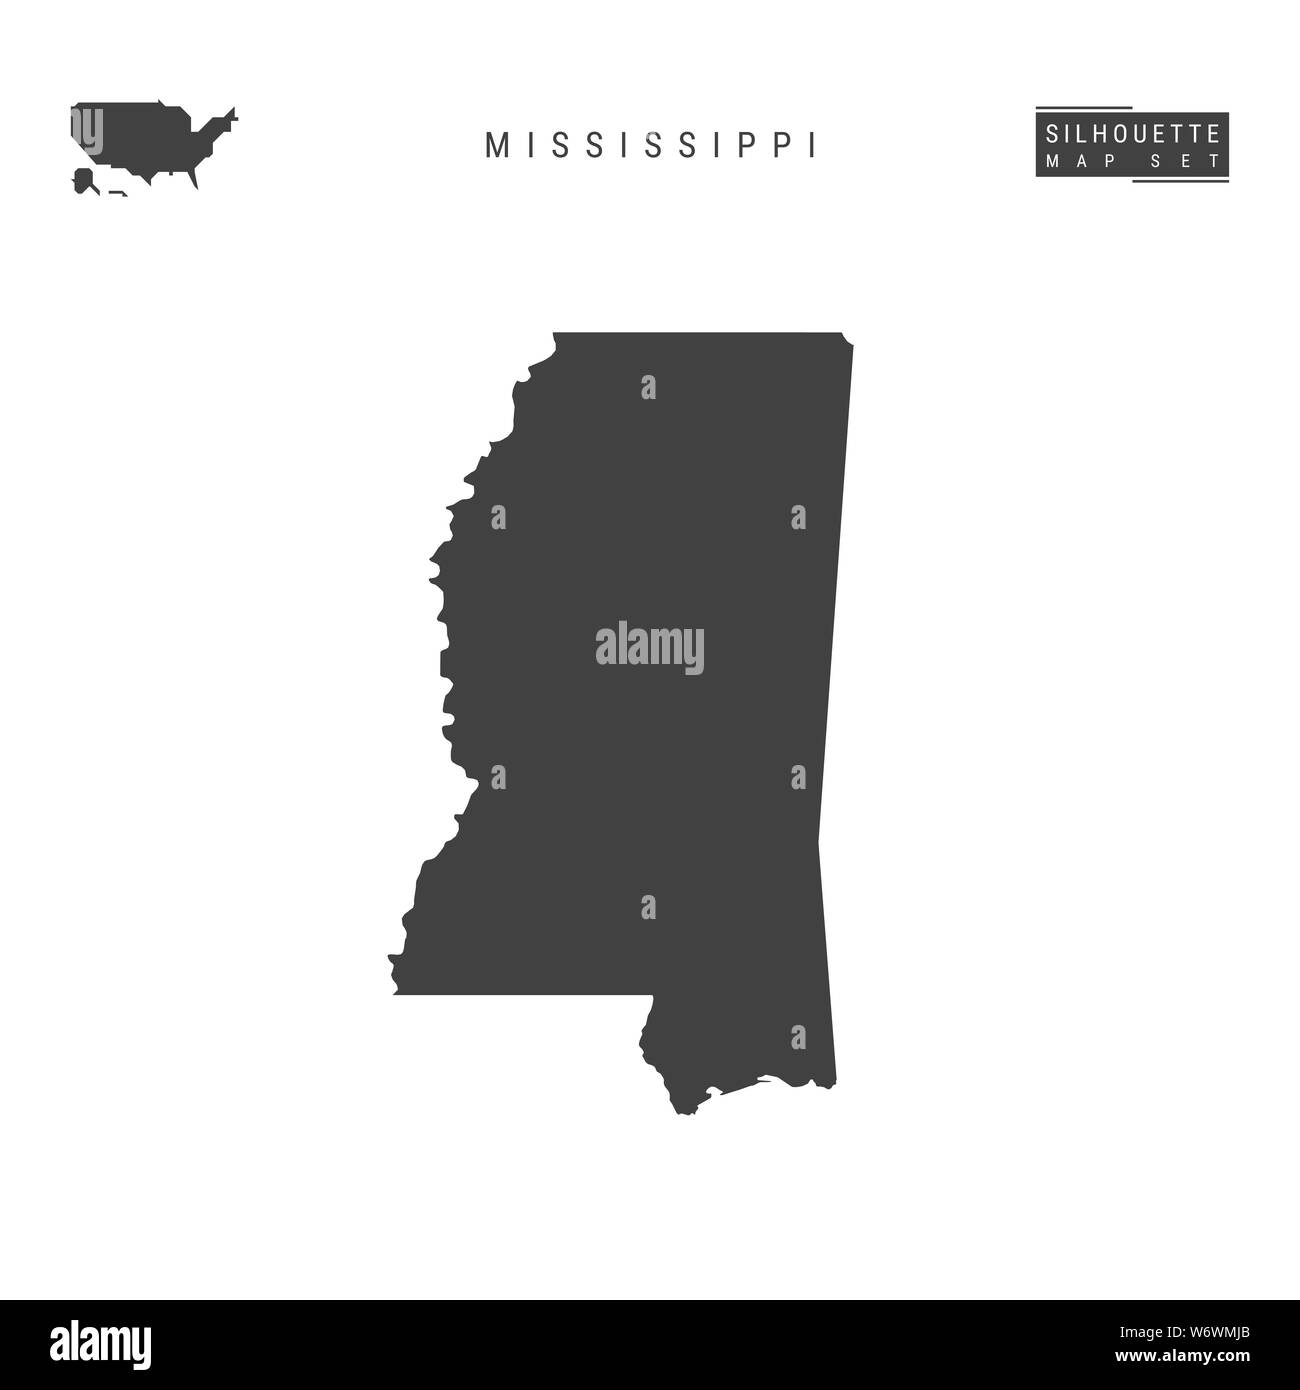 Mississippi US State Blank Map Isolated on White Background ...